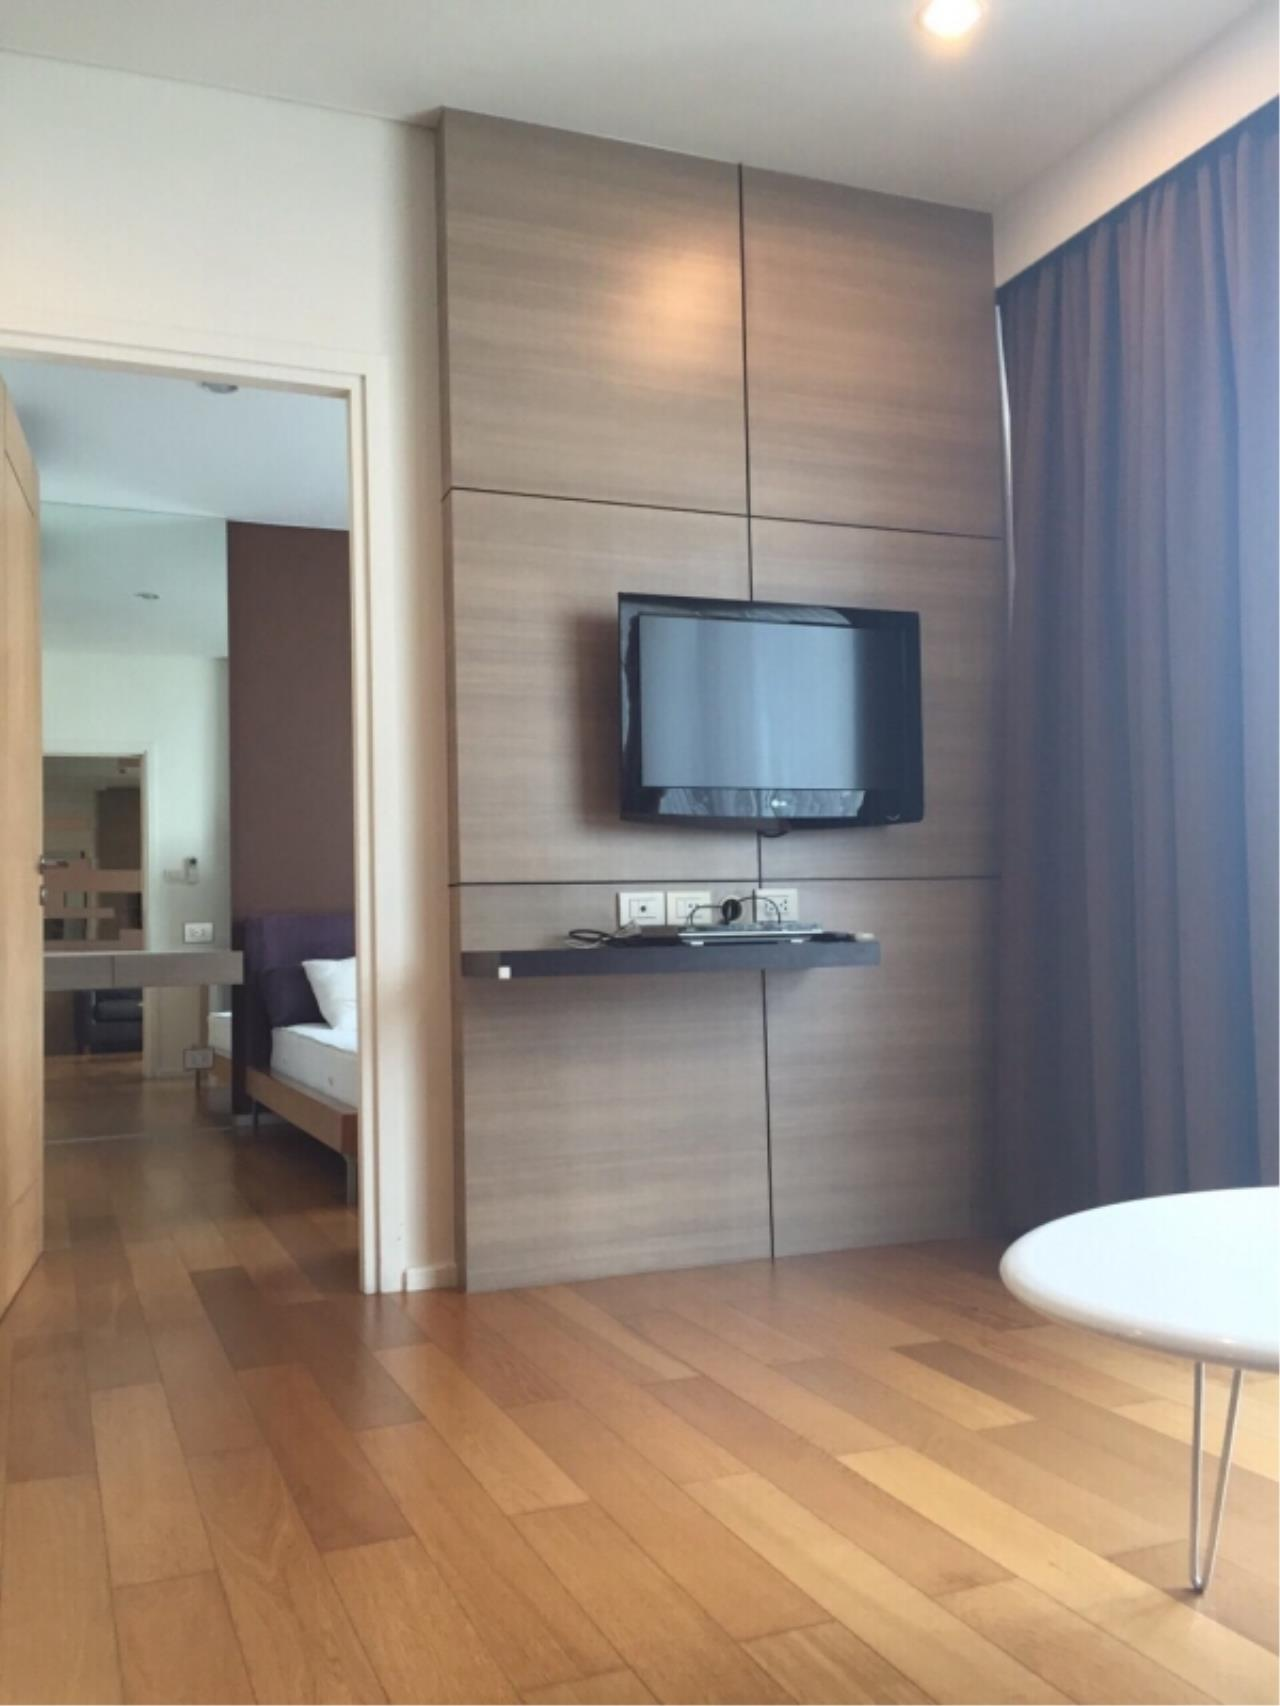 Agent - Mayteekul Sujirapinyokul Agency's AC1100918 For Rent  Condo Wind Sukhumvit 23 2